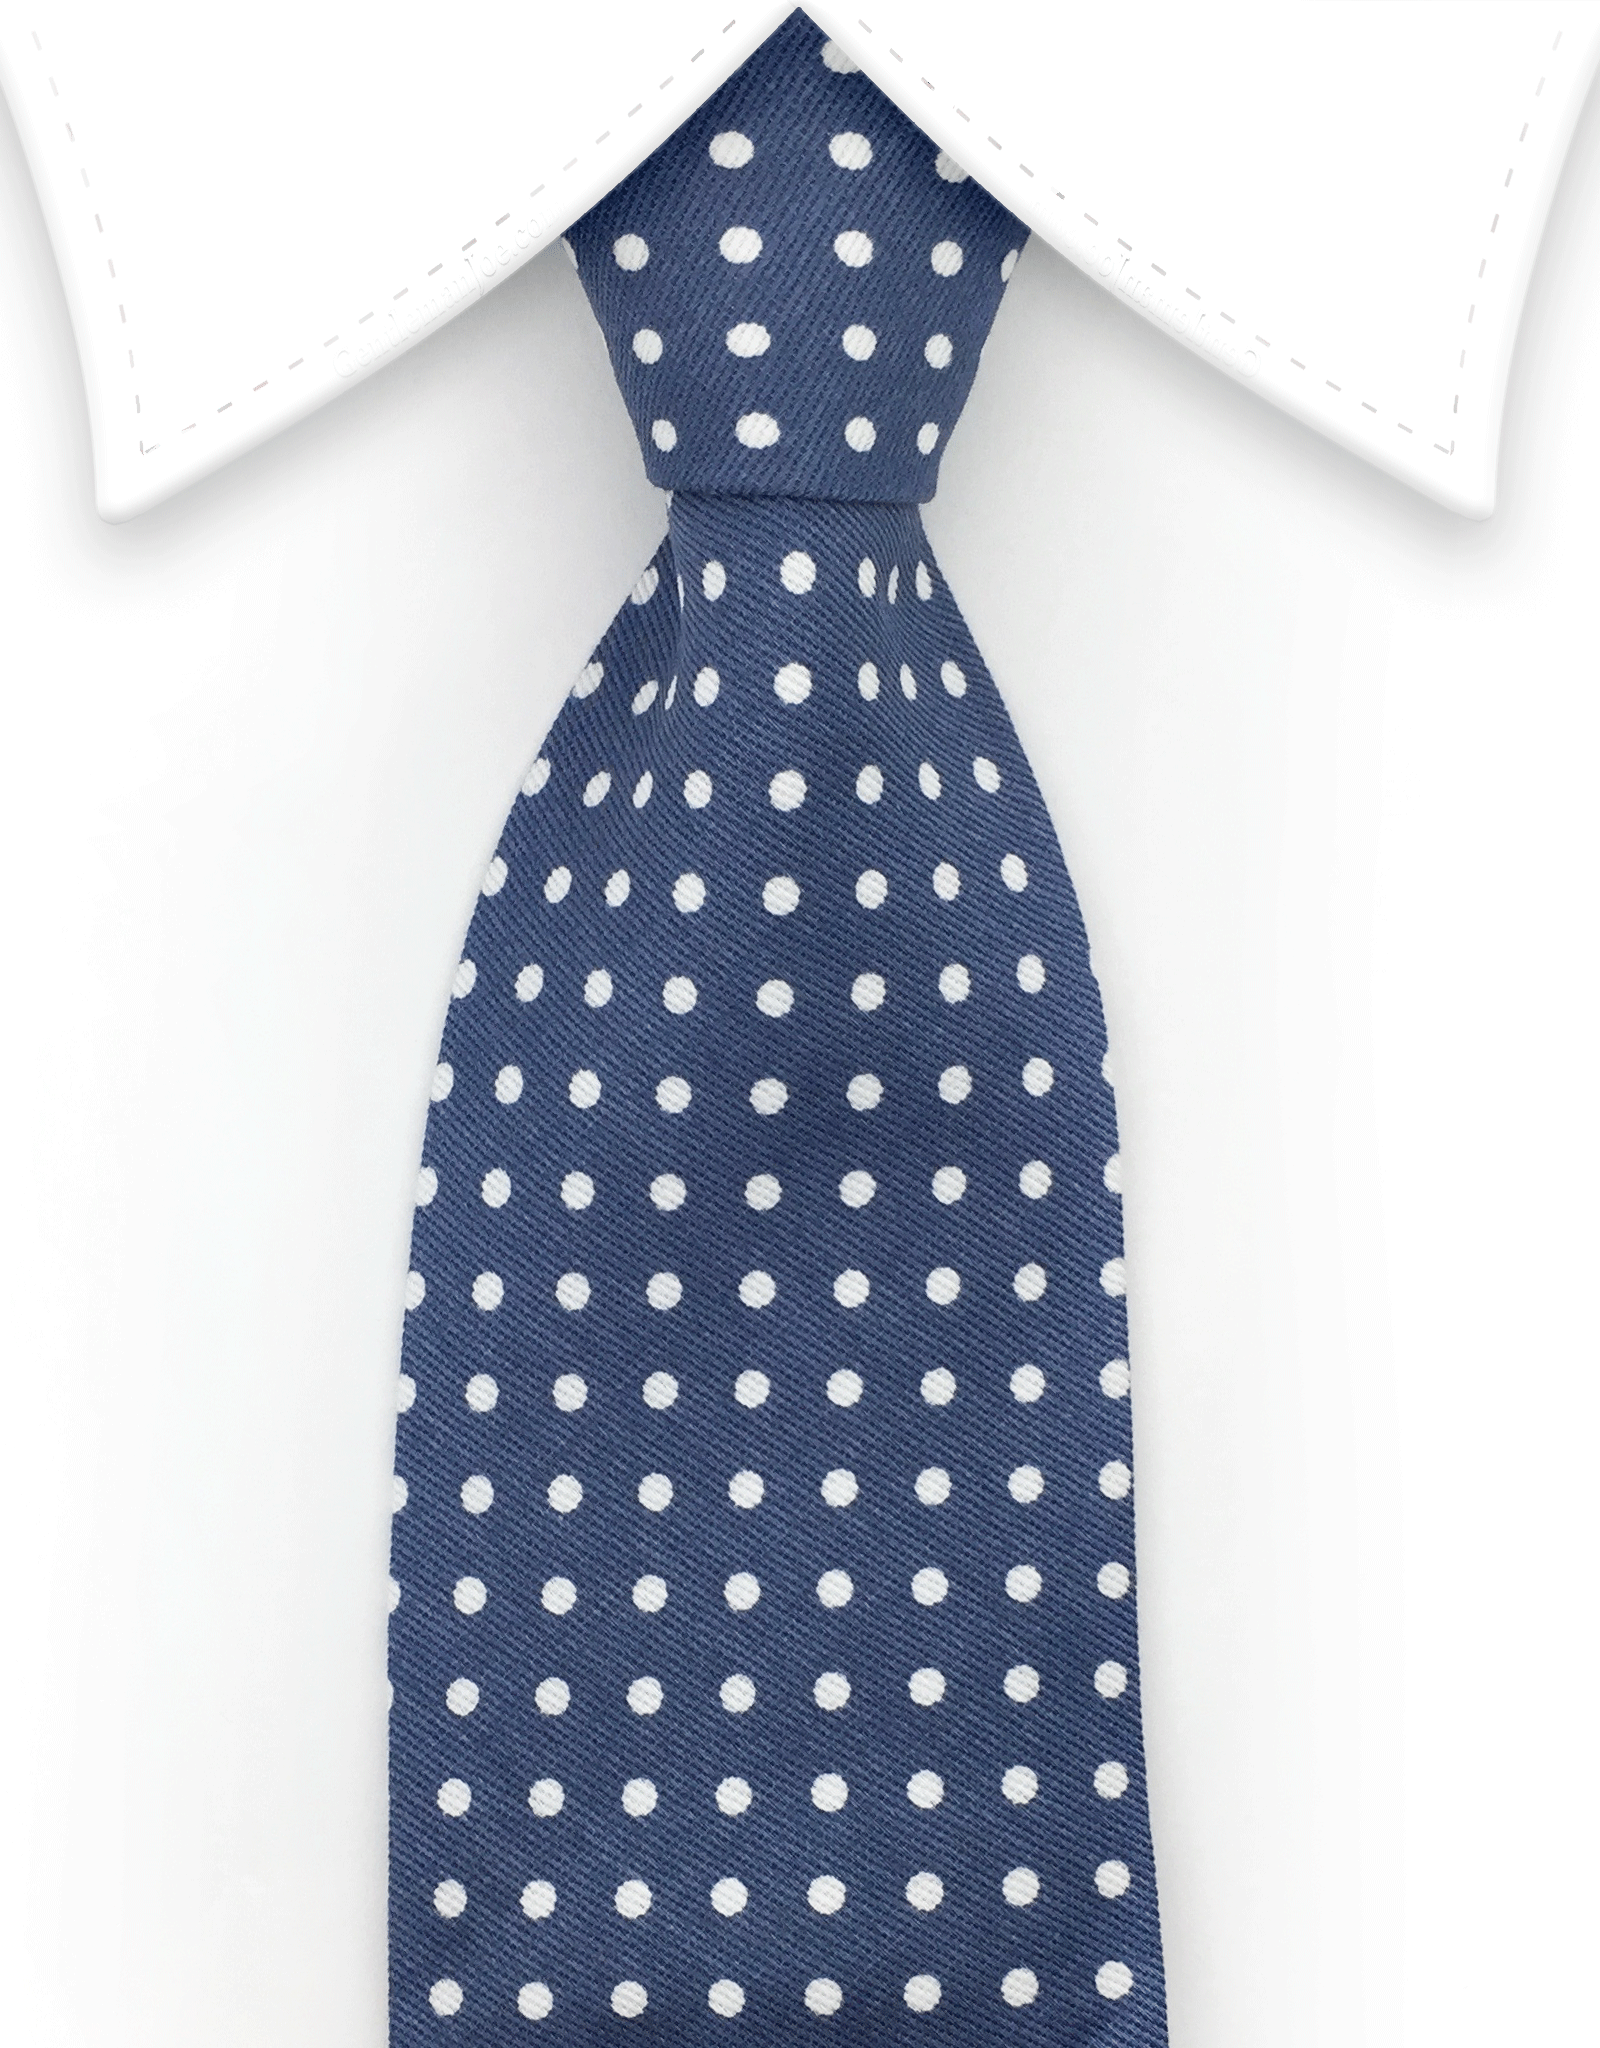 Denim Tie with white polka dots